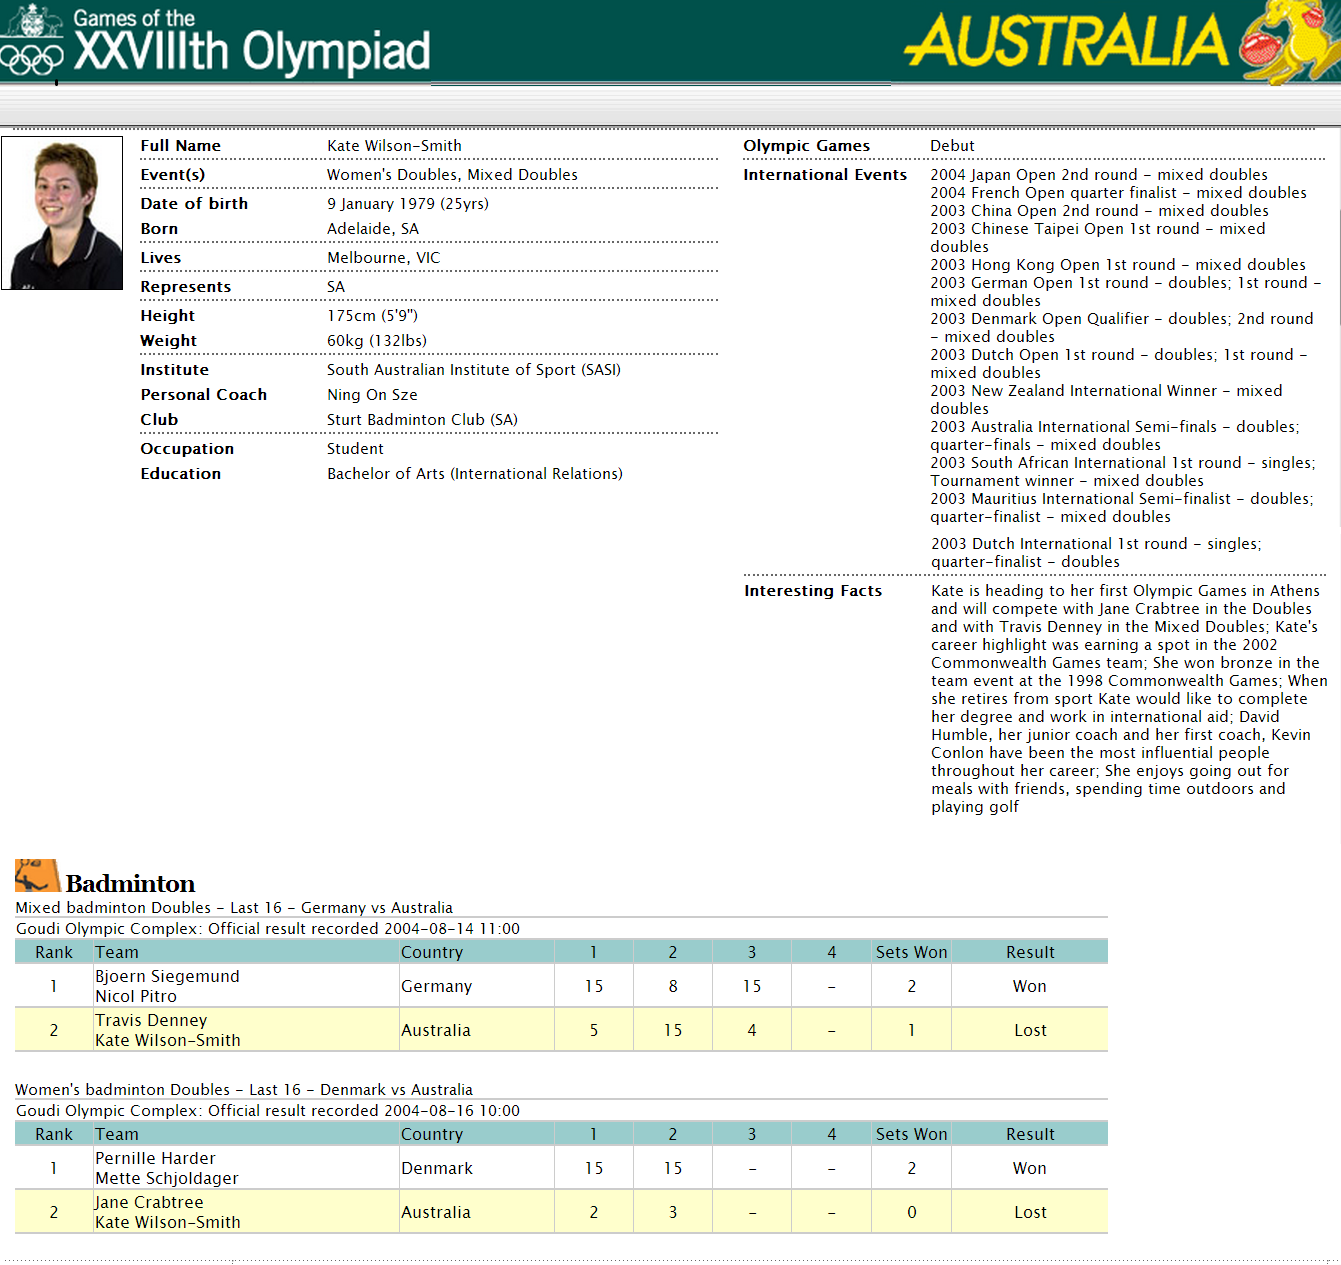 2004 Greece Olympic Games - biography and match results  National Library of Australia web archive Pandora